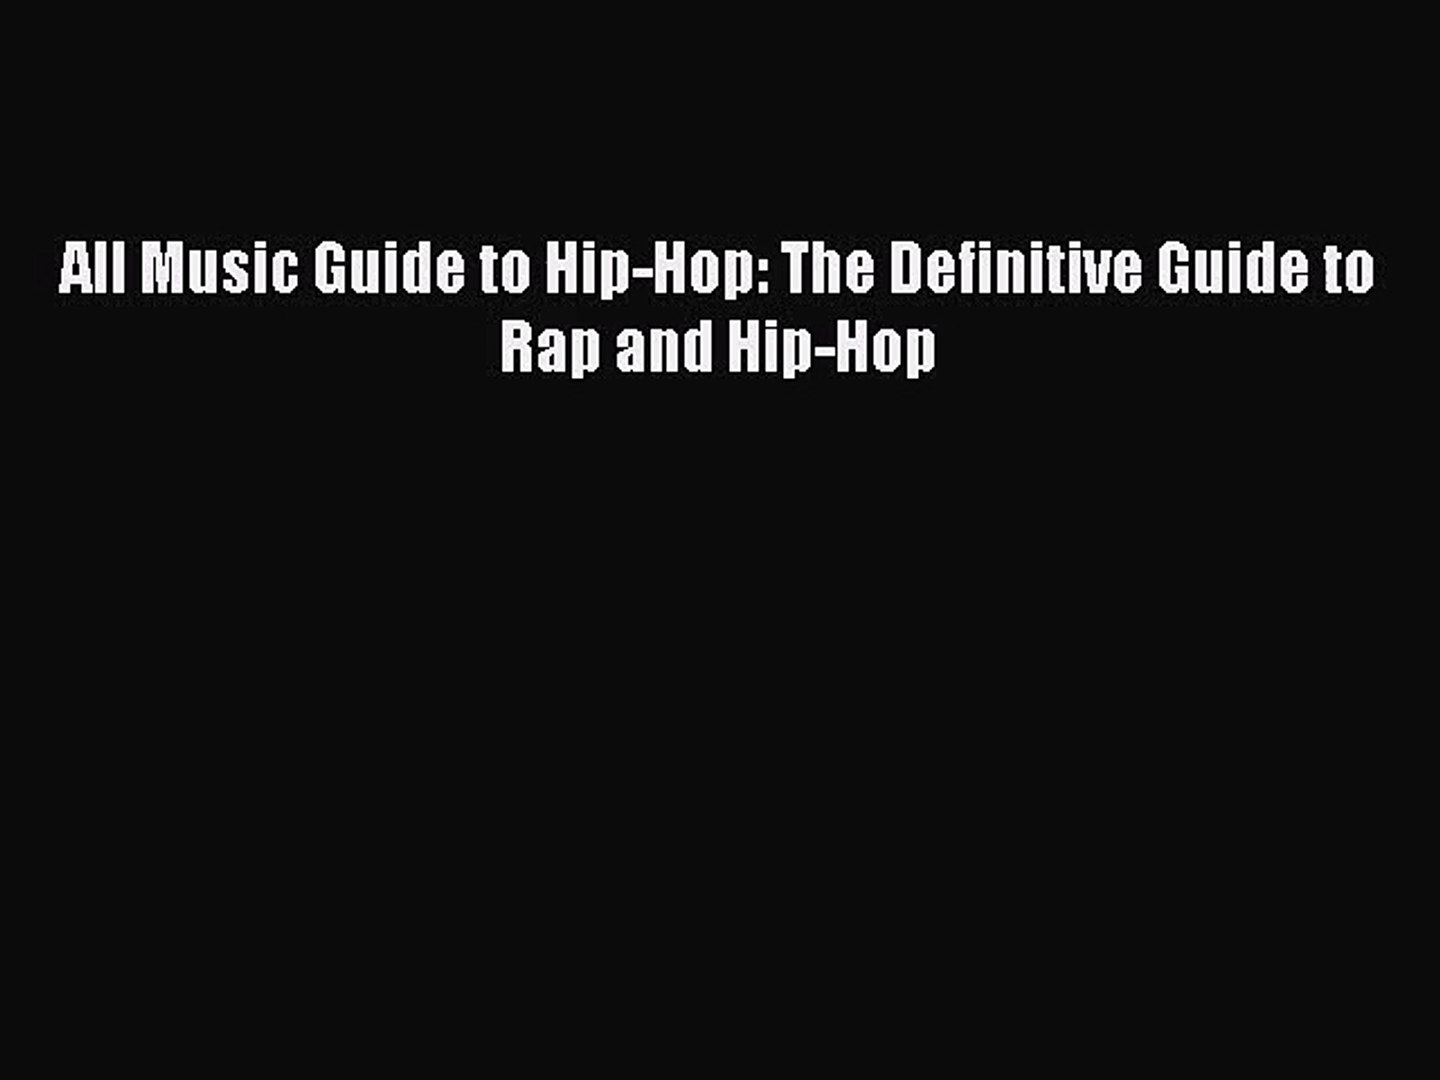 [PDF Download] All Music Guide to Hip-Hop: The Definitive Guide to Rap and Hip-Hop [Read] Online